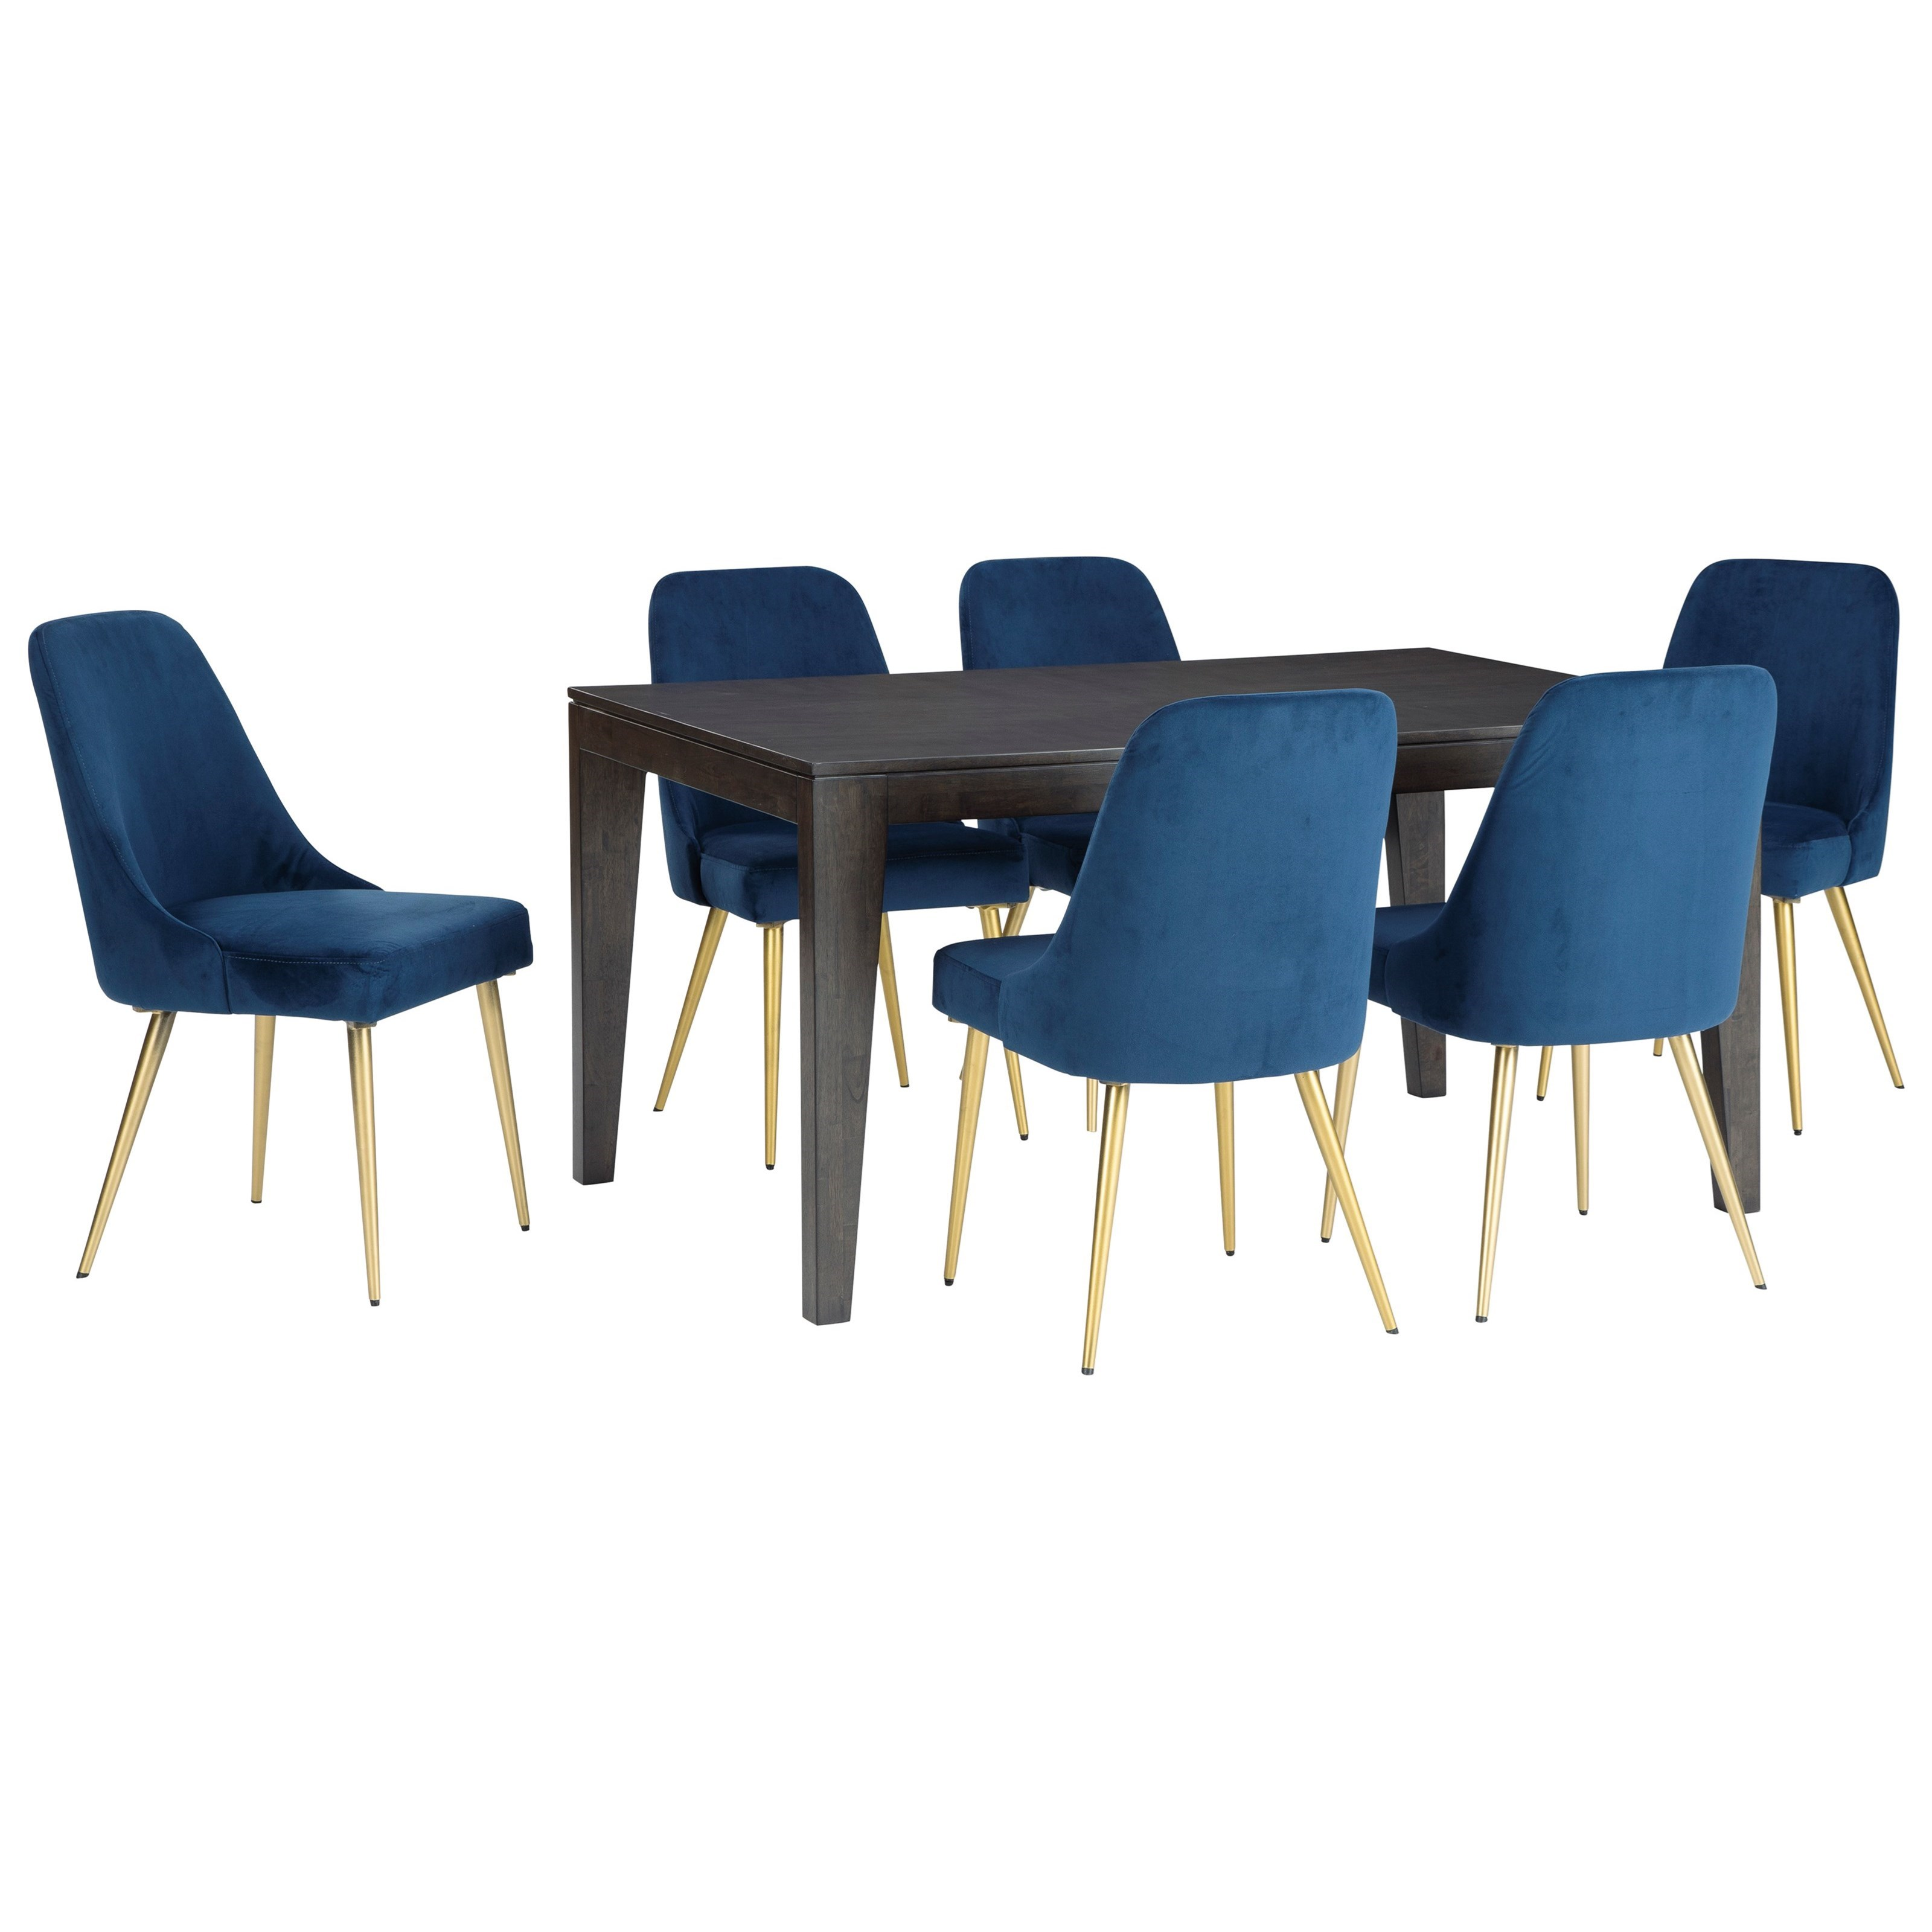 Trishcott 7-Piece Table and Chair Set by Ashley Furniture at Houston's Yuma Furniture